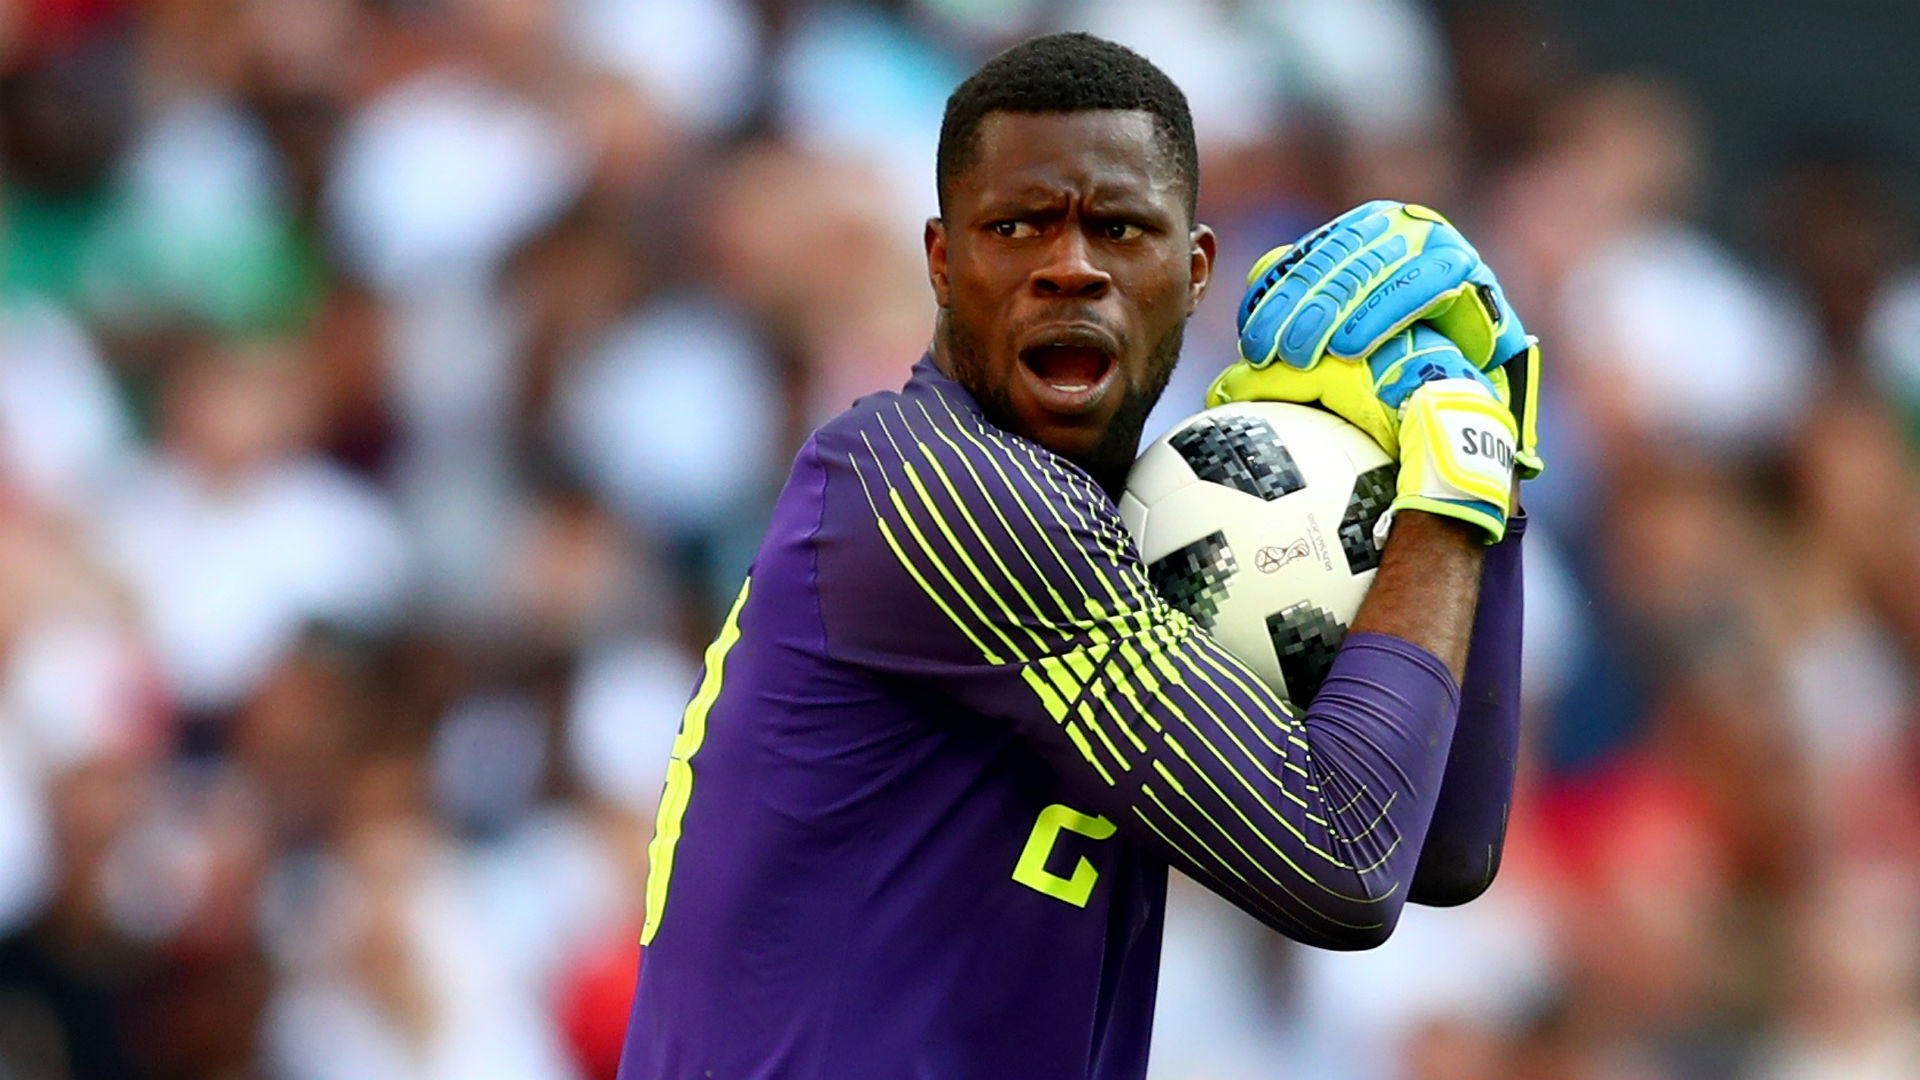 Afcon 2019: Akpeyi out, Uzoho in and Aina returns to Nigeria's starting XI against Tunisia